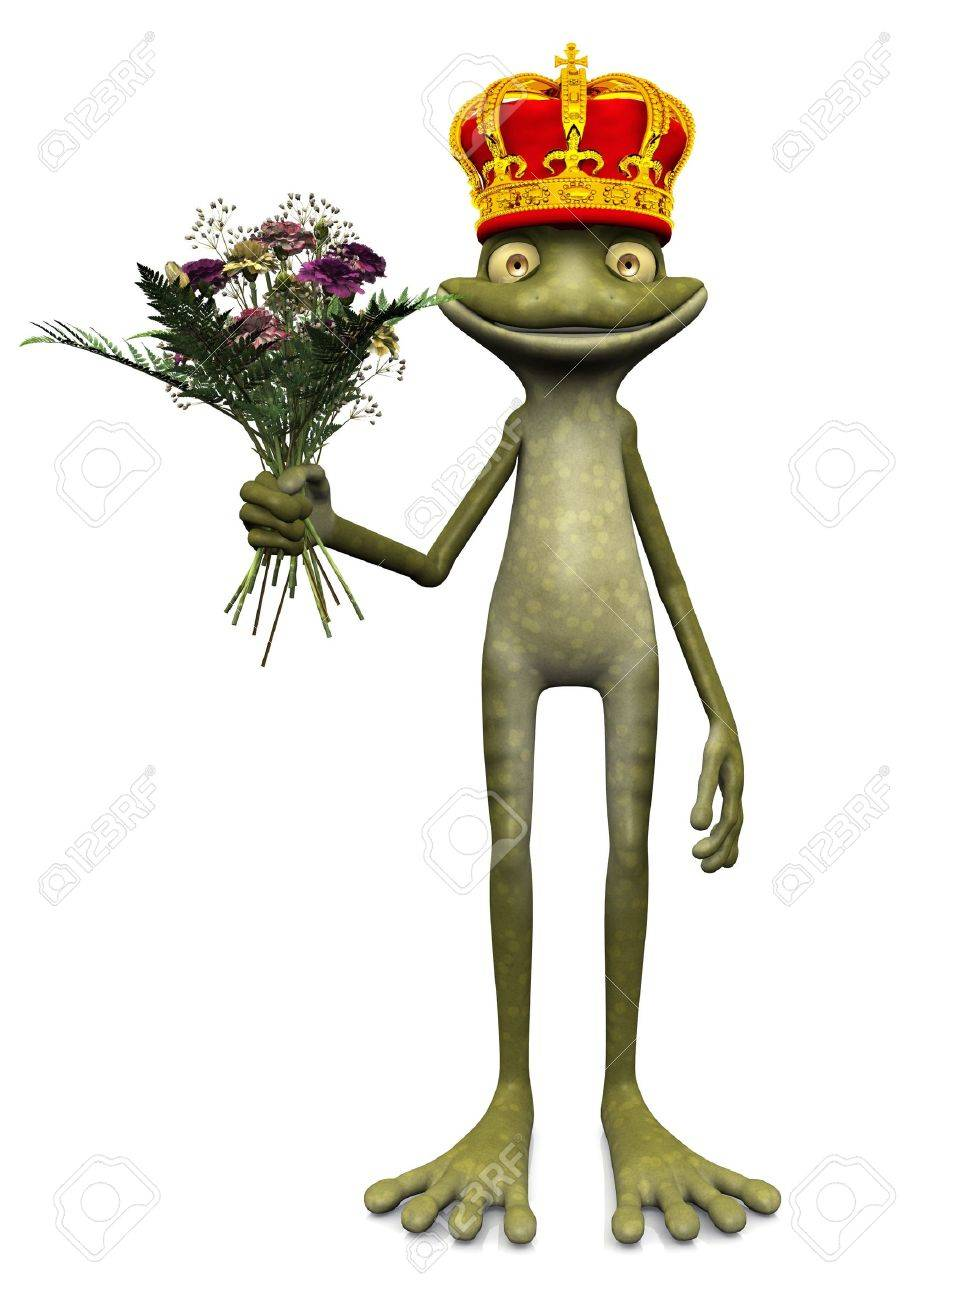 a charming cartoon frog with a prince crown on his head and a